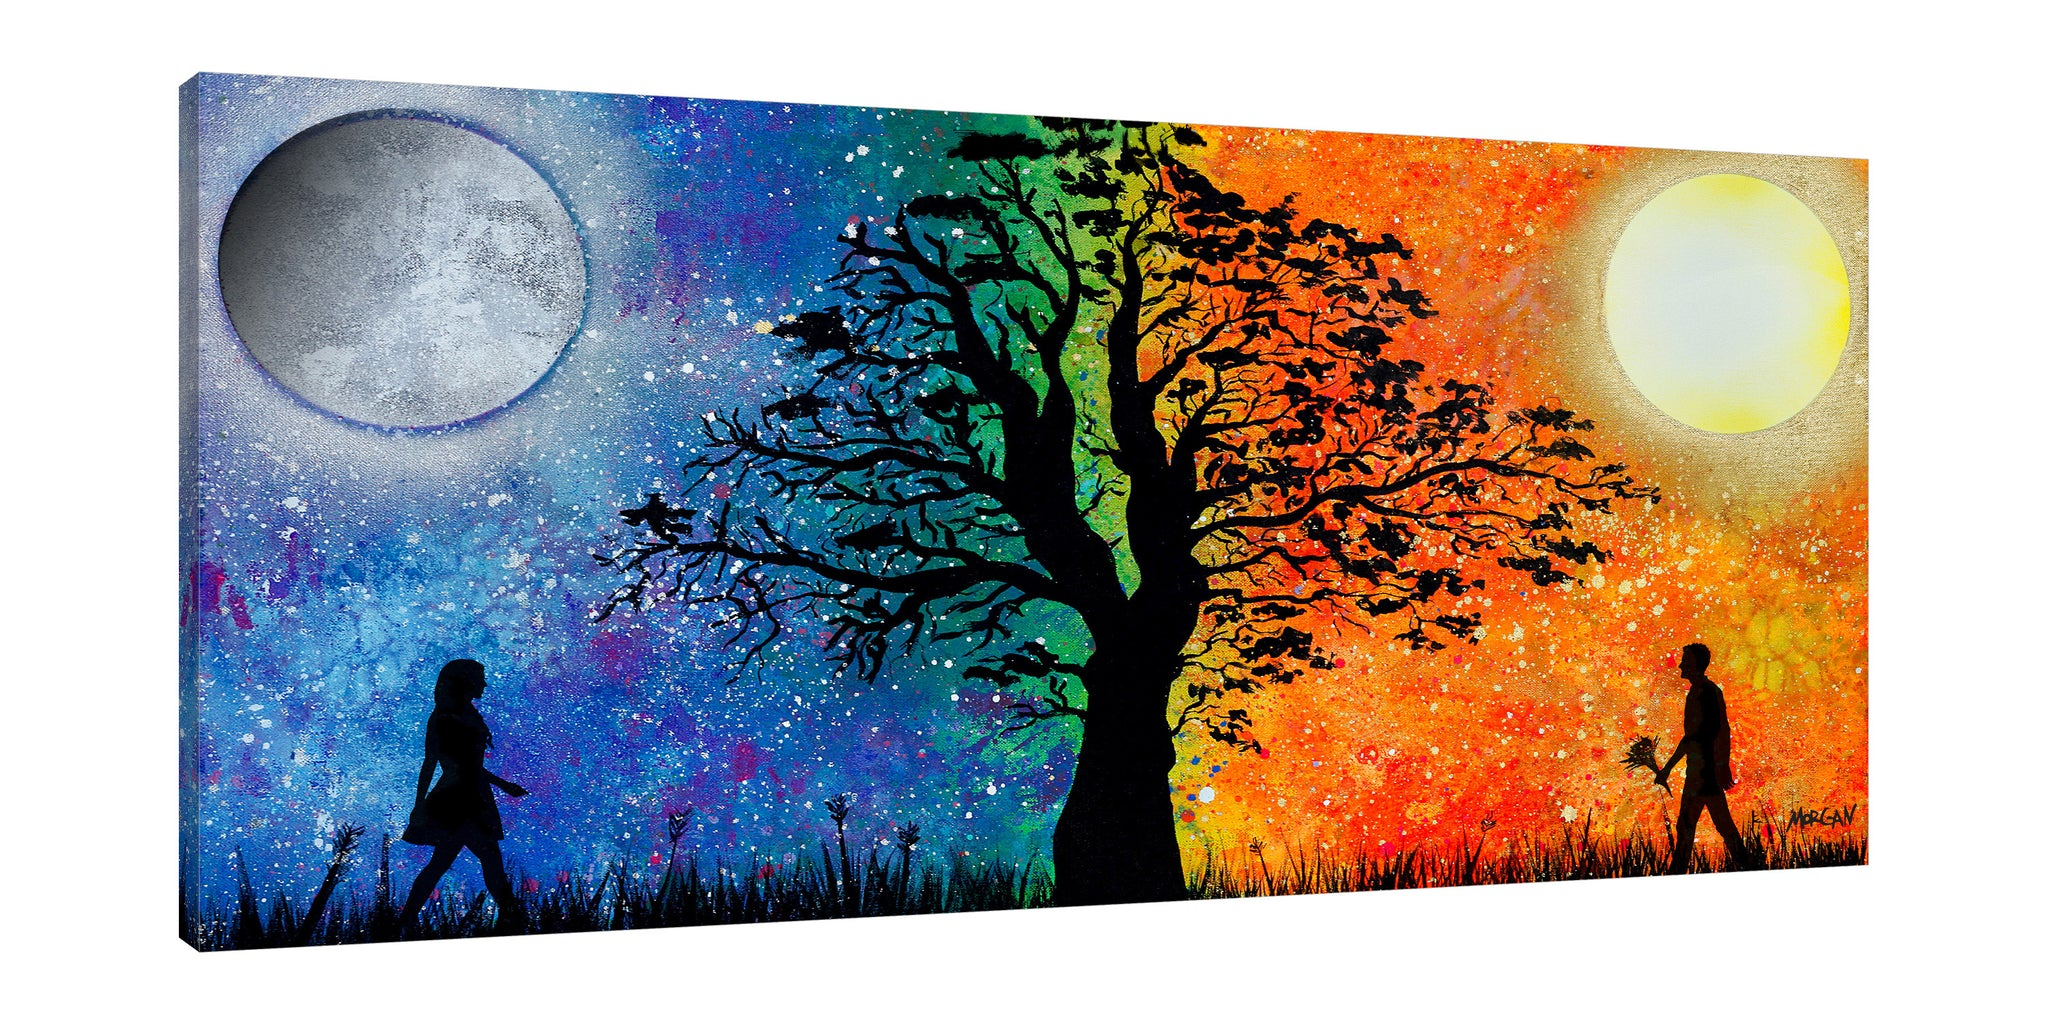 Morgan-Richardson,Horizontal,2X1,Modern & Contemporary,People,Entertainment,Landscape & Nature,couple,people,night,day,sun,moon,trees,tree,hope,passion,love,blue,yellow,Red,Lavender Purple,Gray,Mint Green,Sea Green,Blue,Black,Charcoal Gray,Green